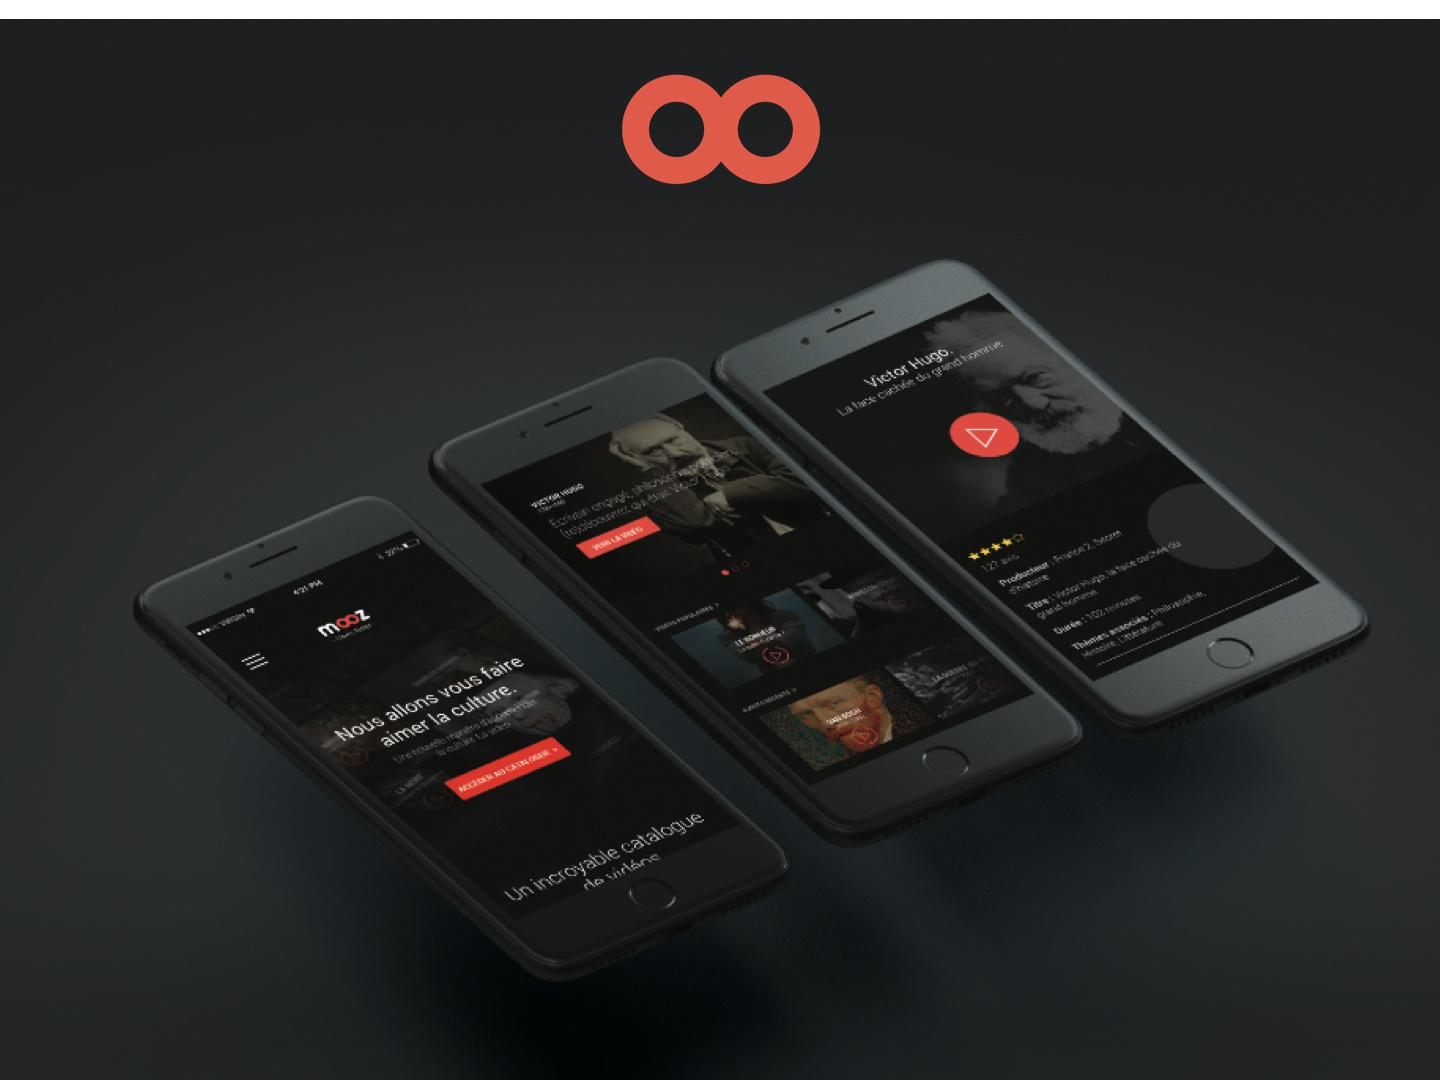 Mooz Clever Faster Video E Learning App By Clément Bruat